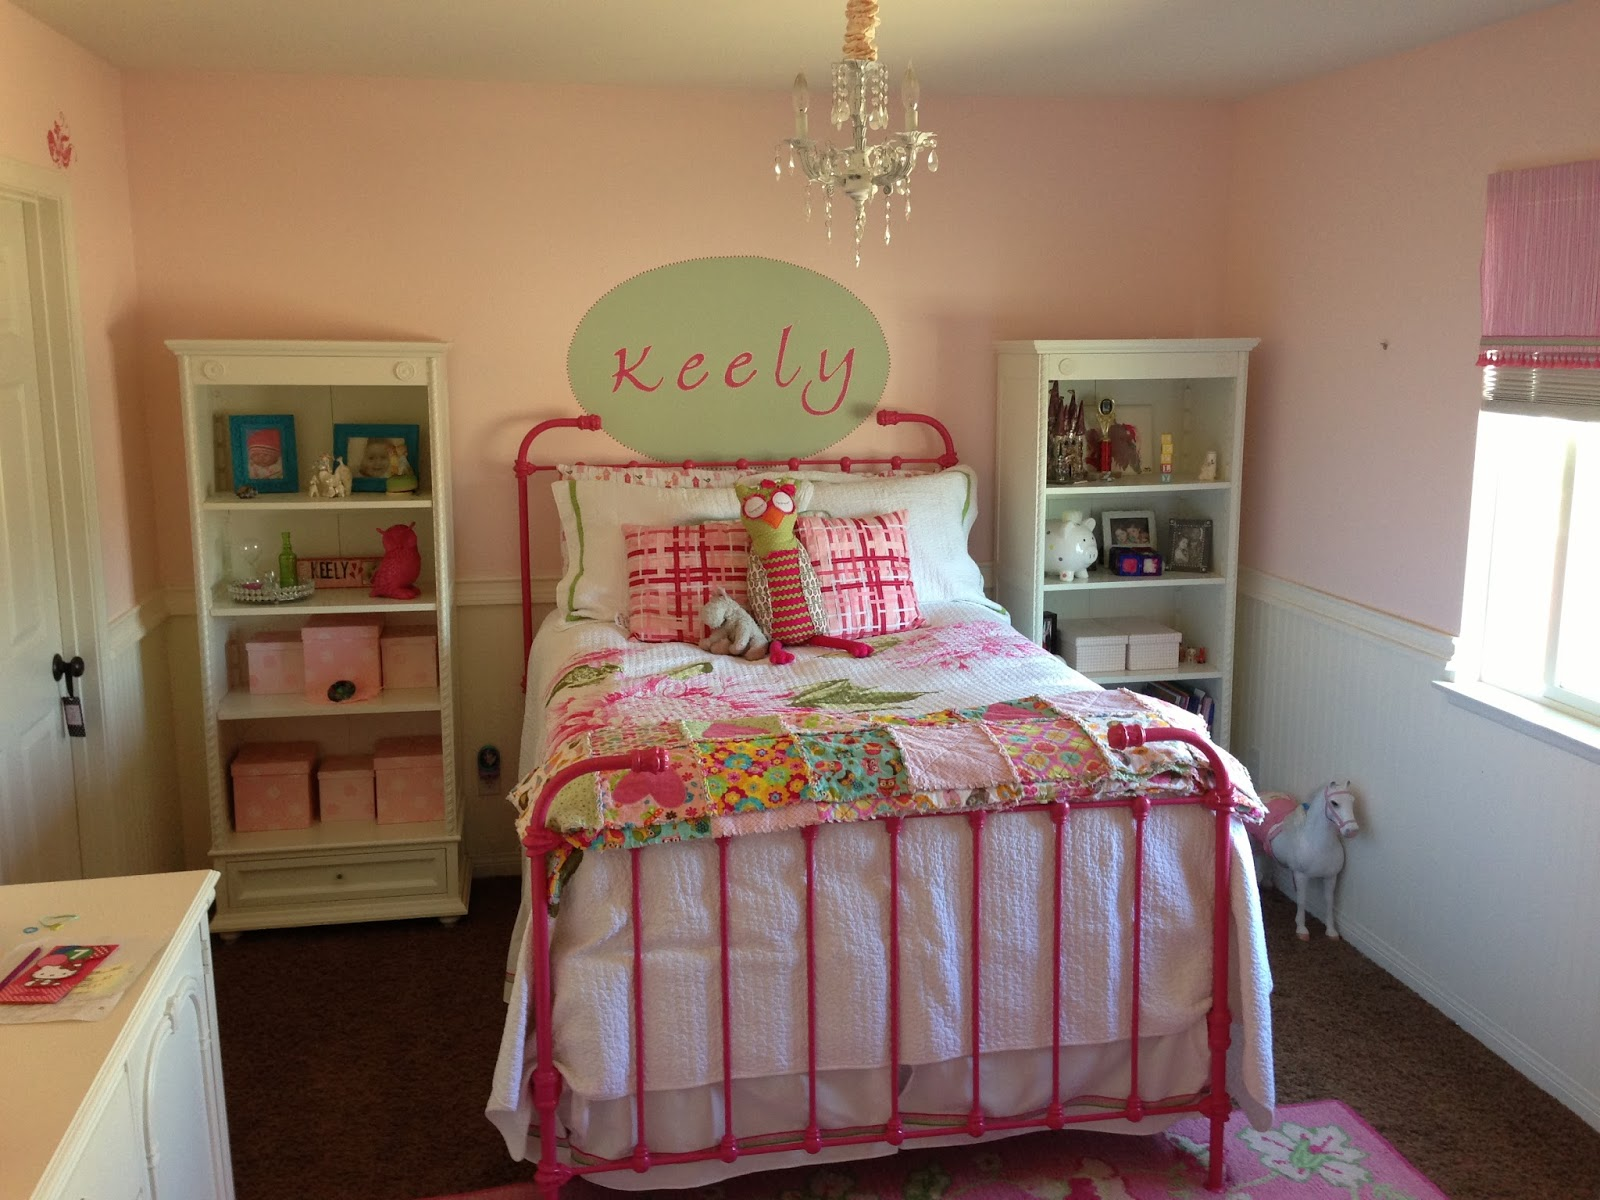 3 little things keely 39 s big girl room make over part 2 - Bedroom decor pinterest ...